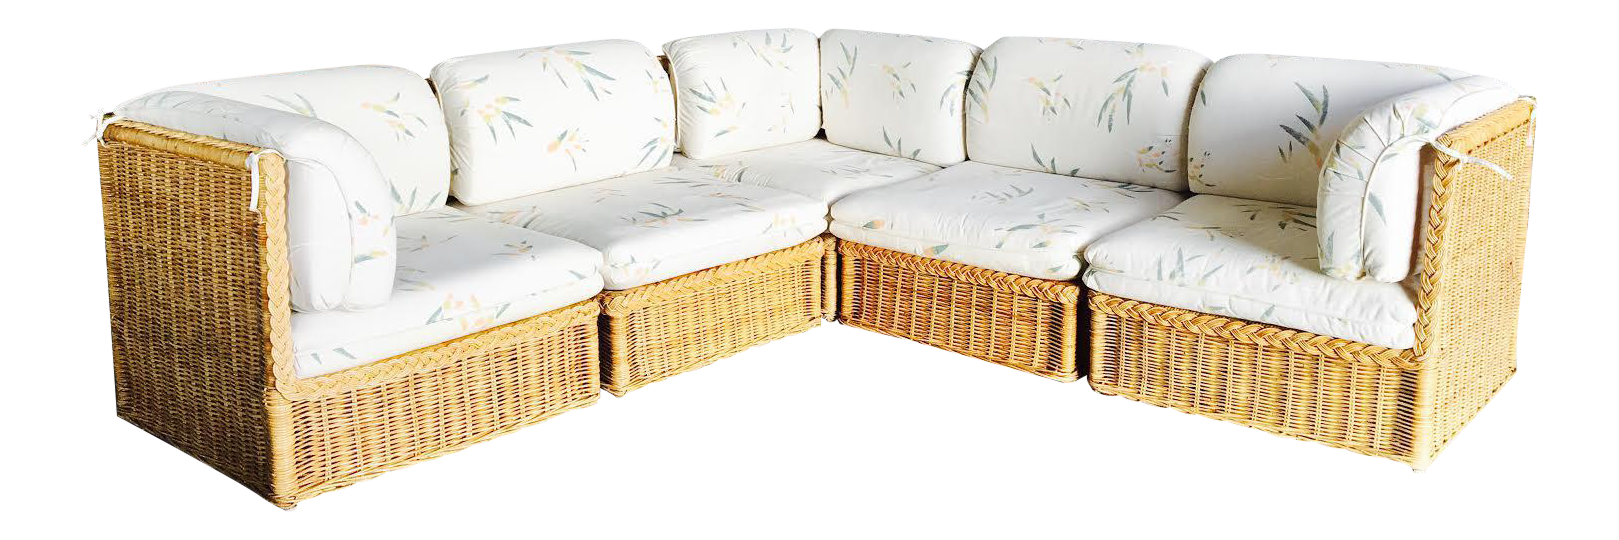 Vintage Tuxedo Shaped Woven Wicker Sectional Sofa  sc 1 st  Chairish : tuxedo sectional sofa - Sectionals, Sofas & Couches